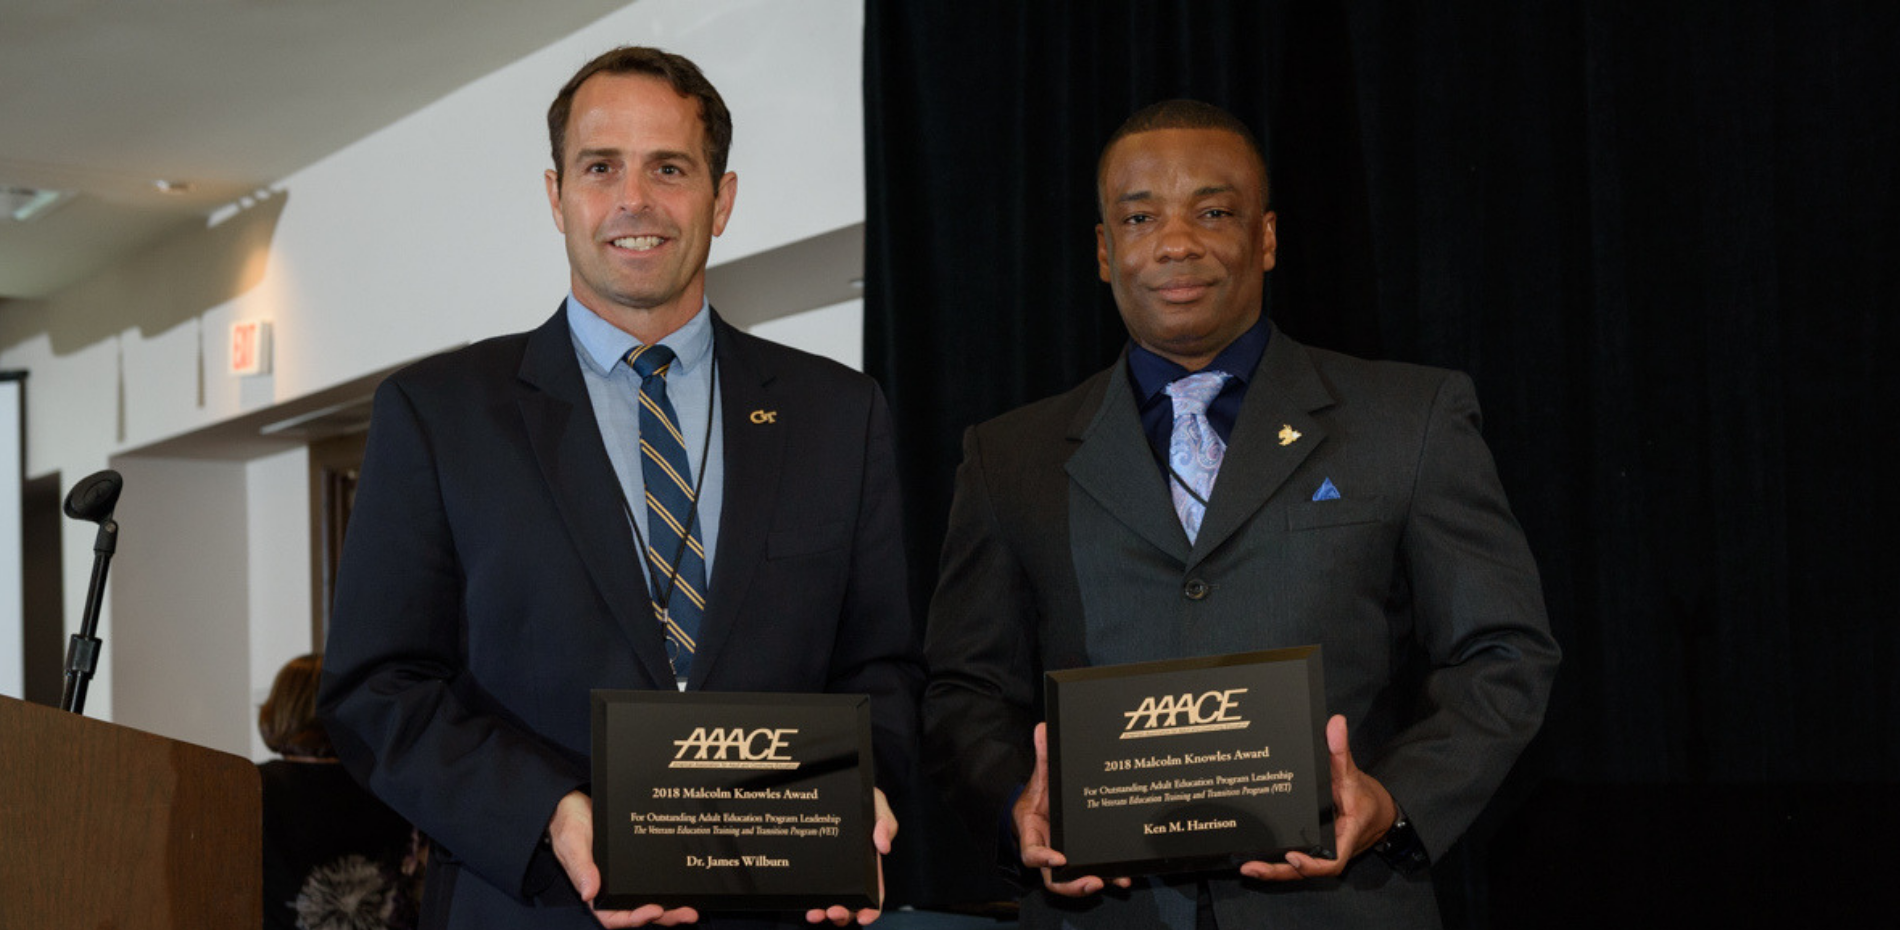 James Wilburn and Ken Harrison standing with award plaques